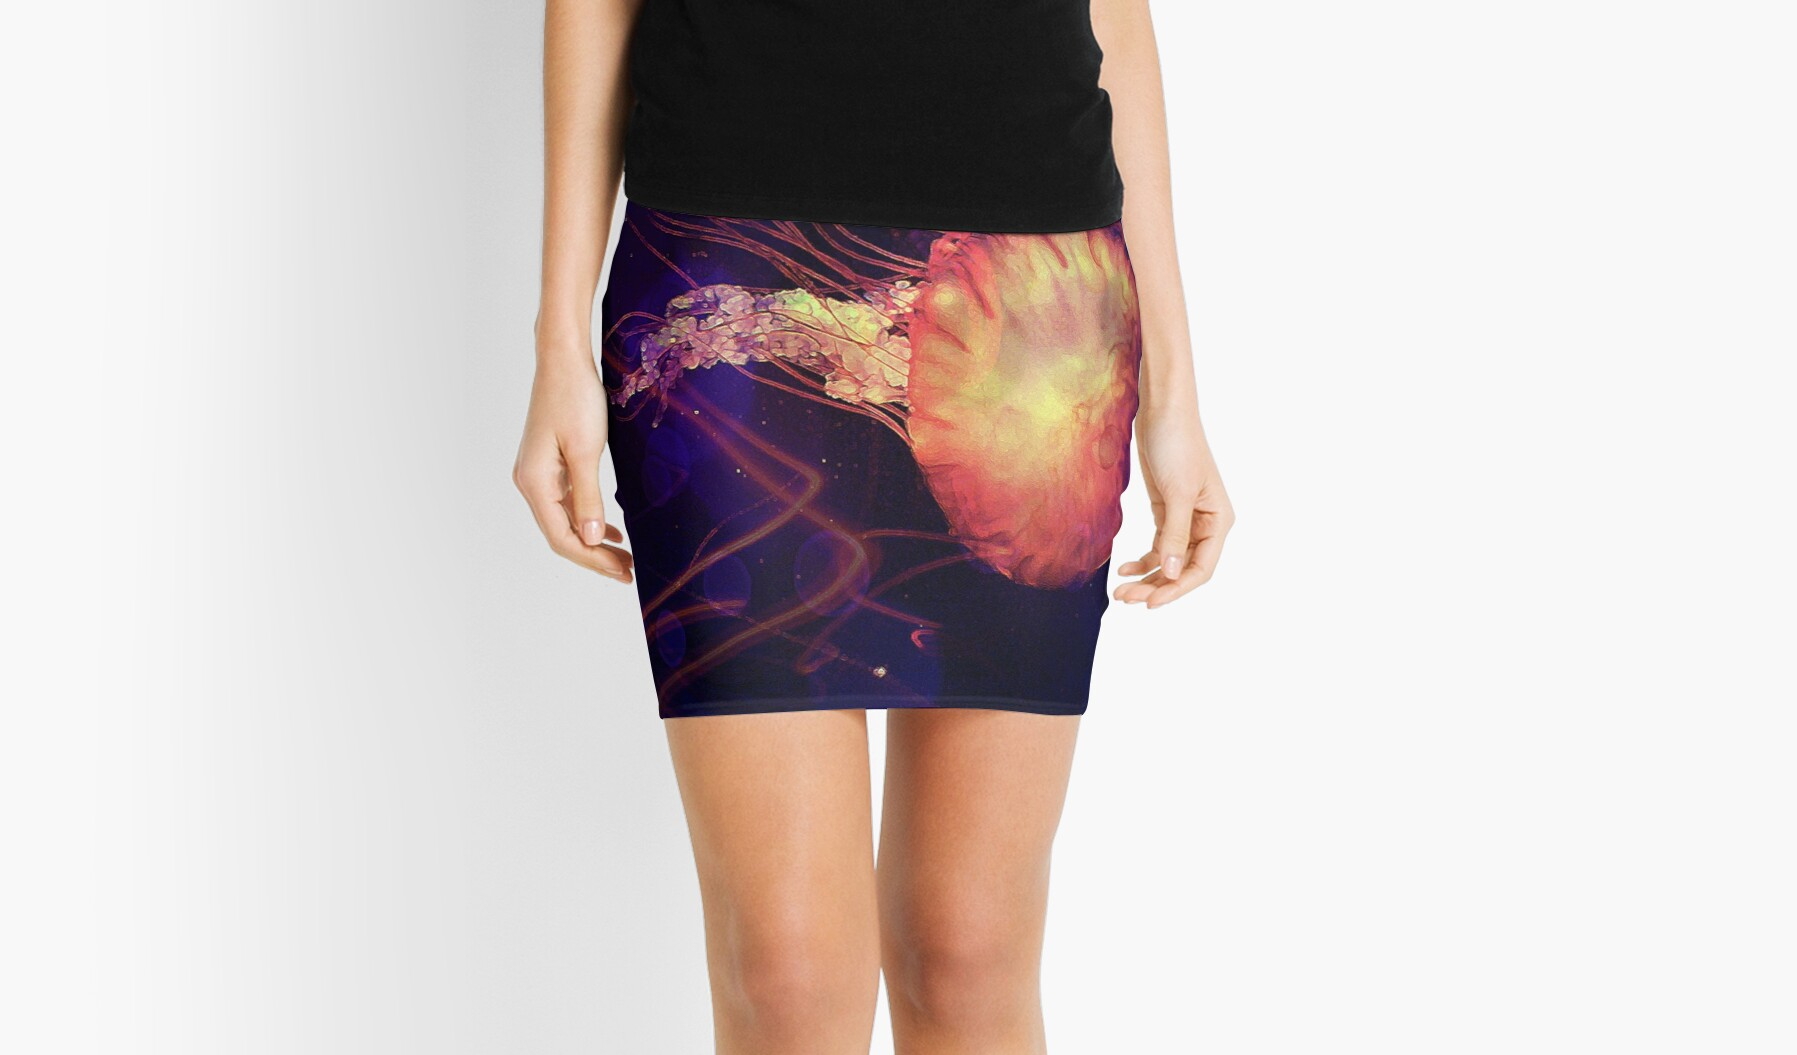 73281dde8e326 Jellyfish of the Blacklight Electro Rave